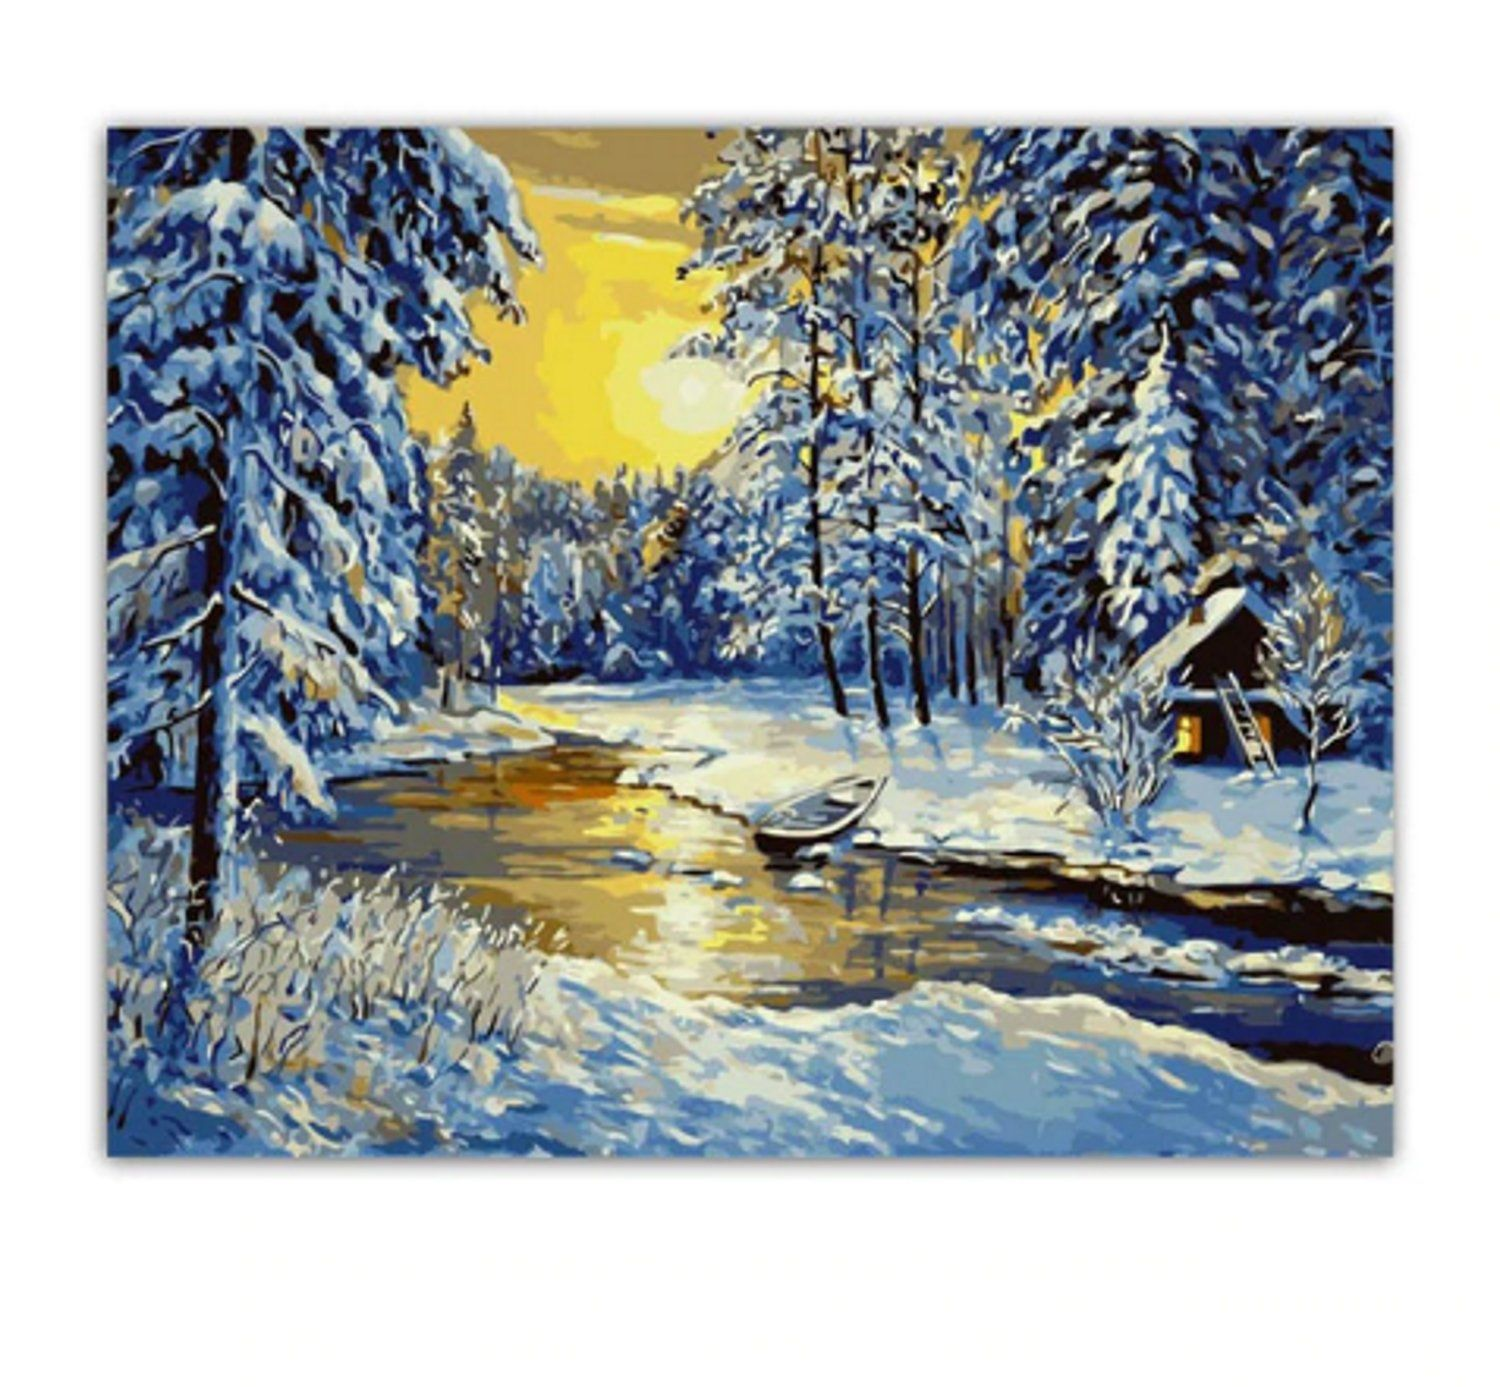 Diy Paint By Number Kit Sunrise River Forest In Winter With